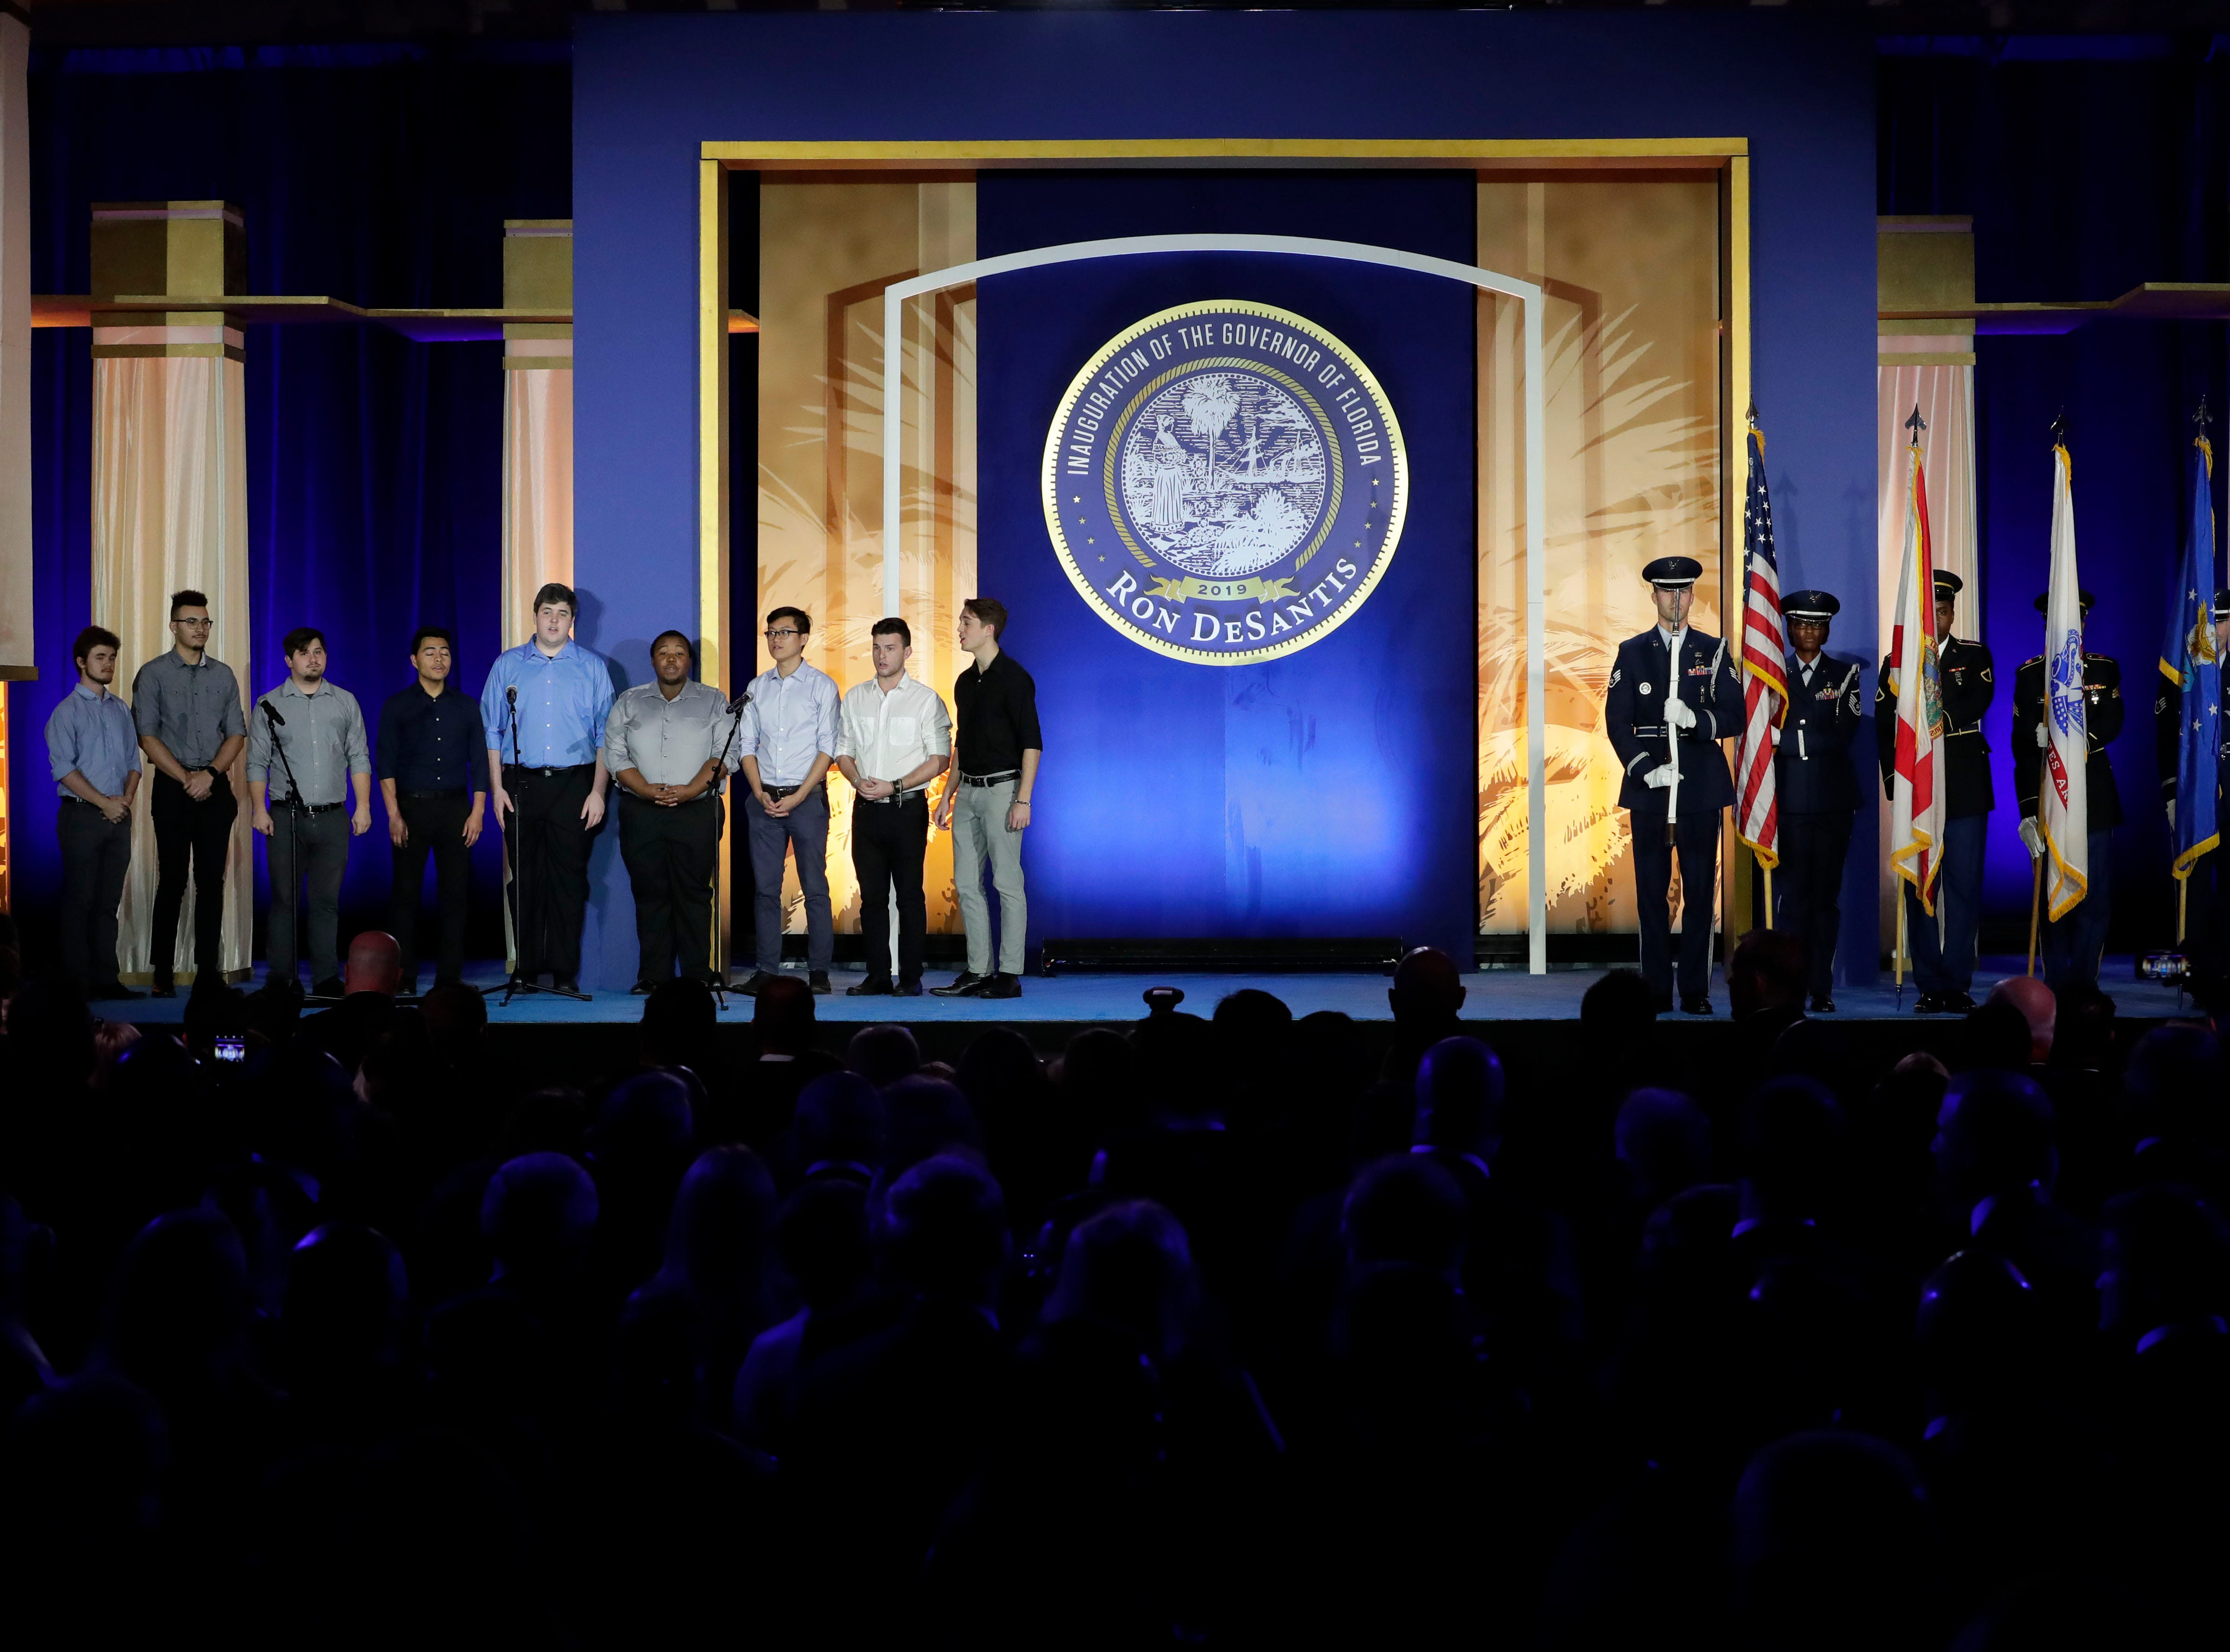 Hundreds of guests from all over Florida attend Florida's 46th Governor's Inaugural Ball at the Tucker Civic Center, Tuesday, Jan. 8, 2019. An a cappella boys group, left, performs the national anthem.